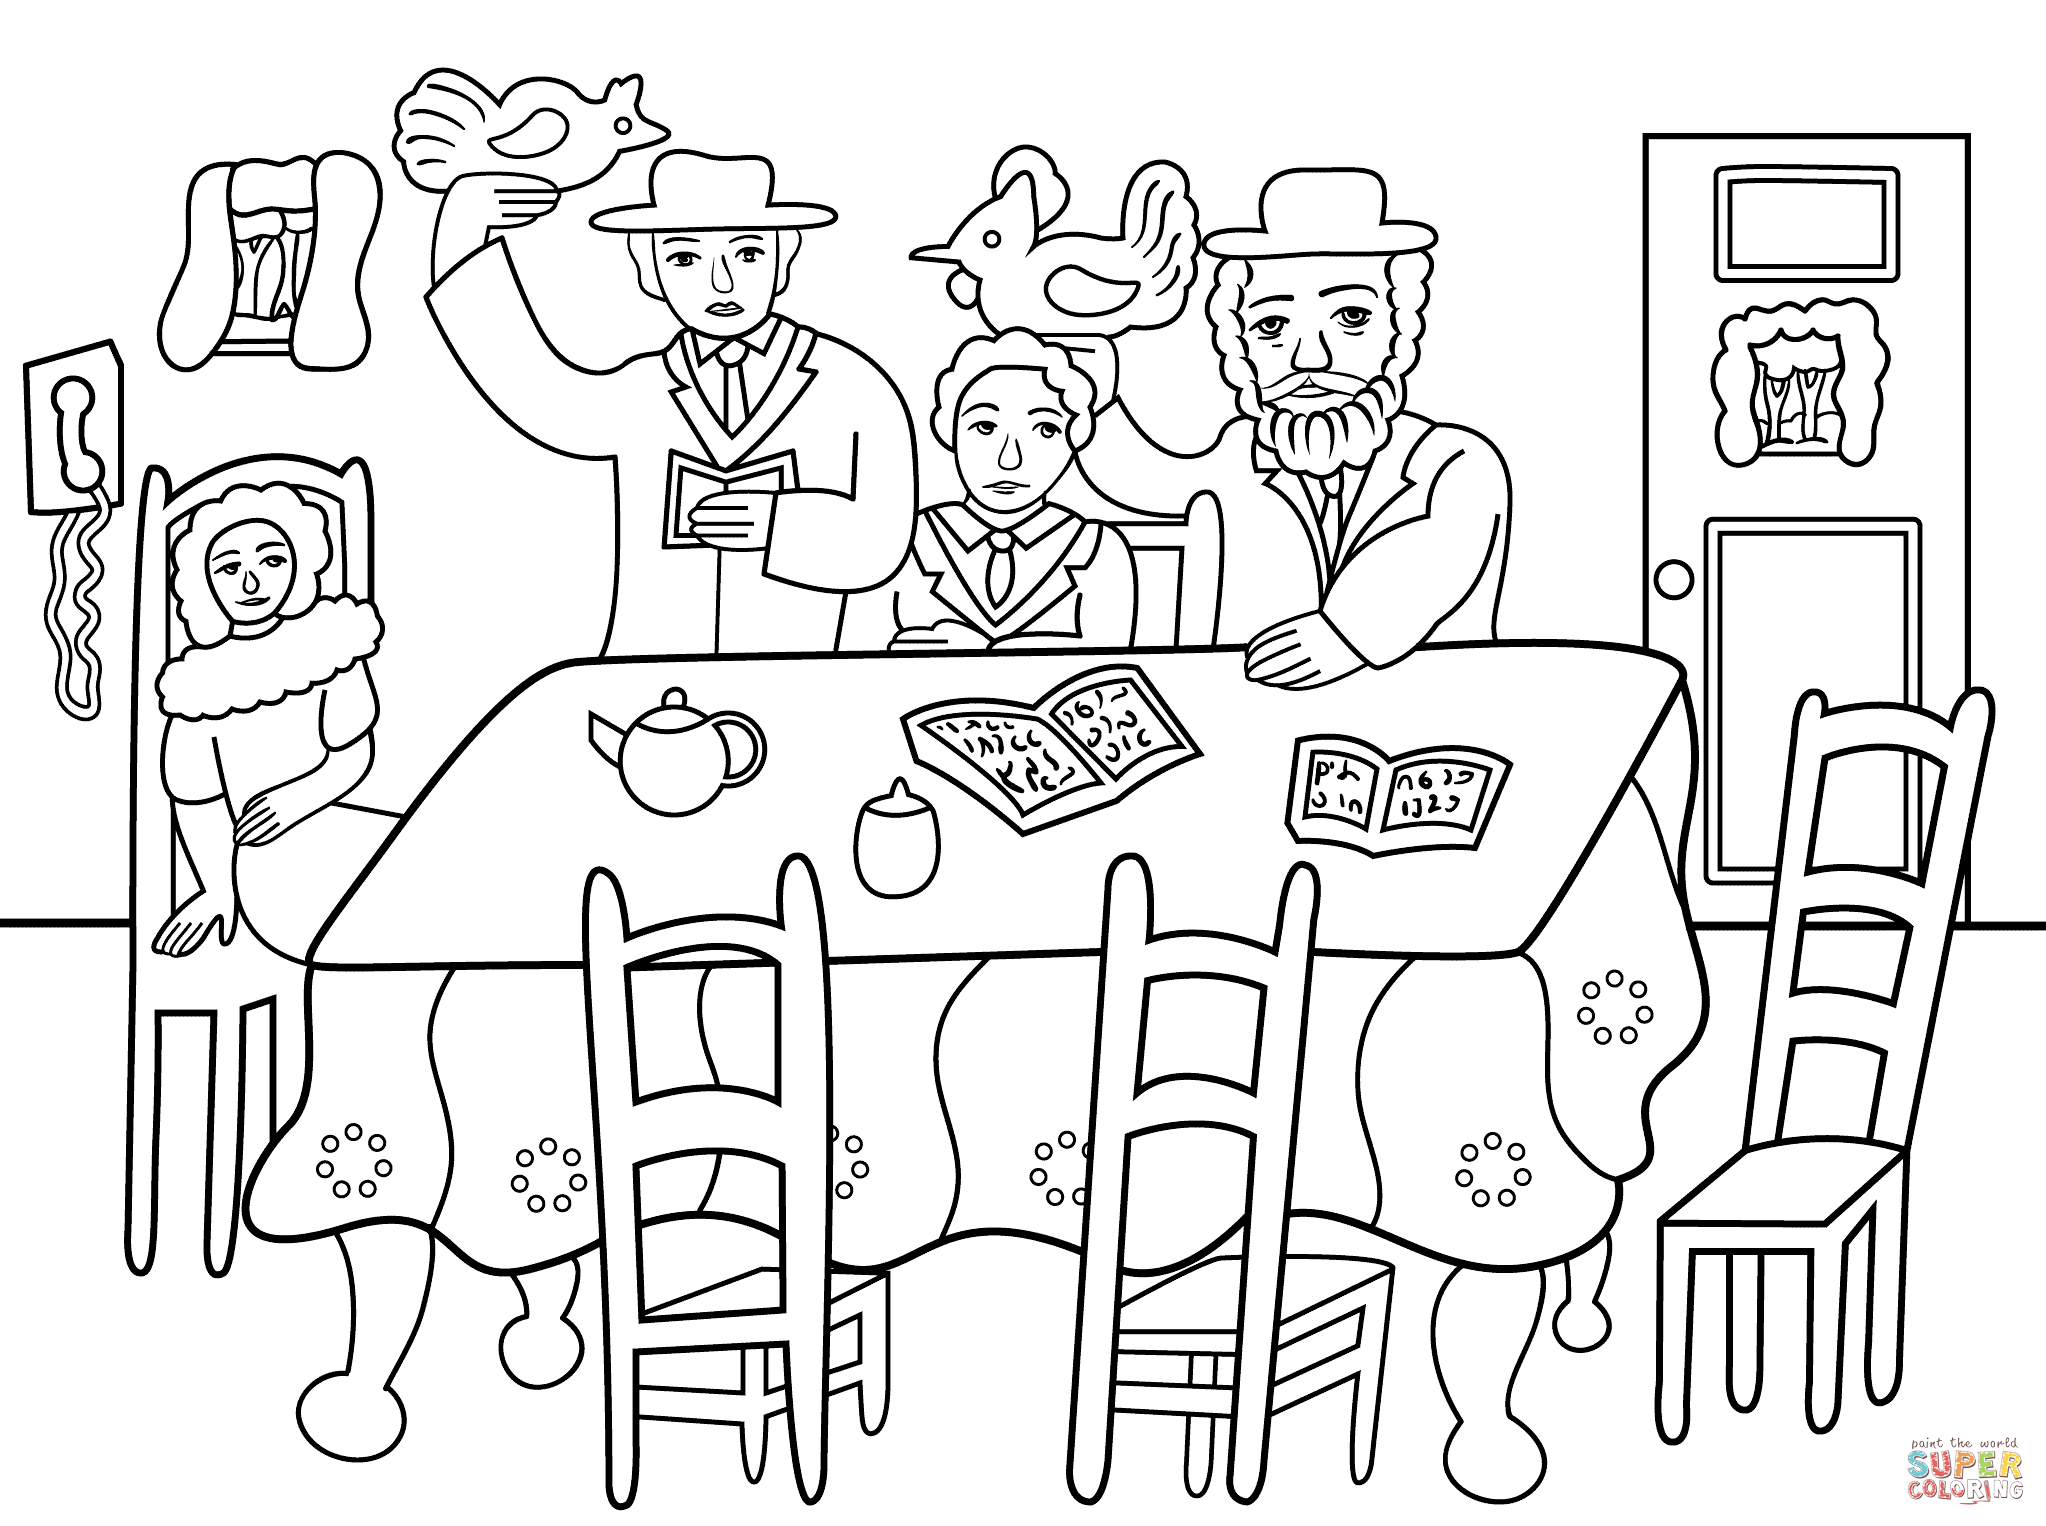 Yom Kippur Coloring Pages  Collection 4e - Free For kids